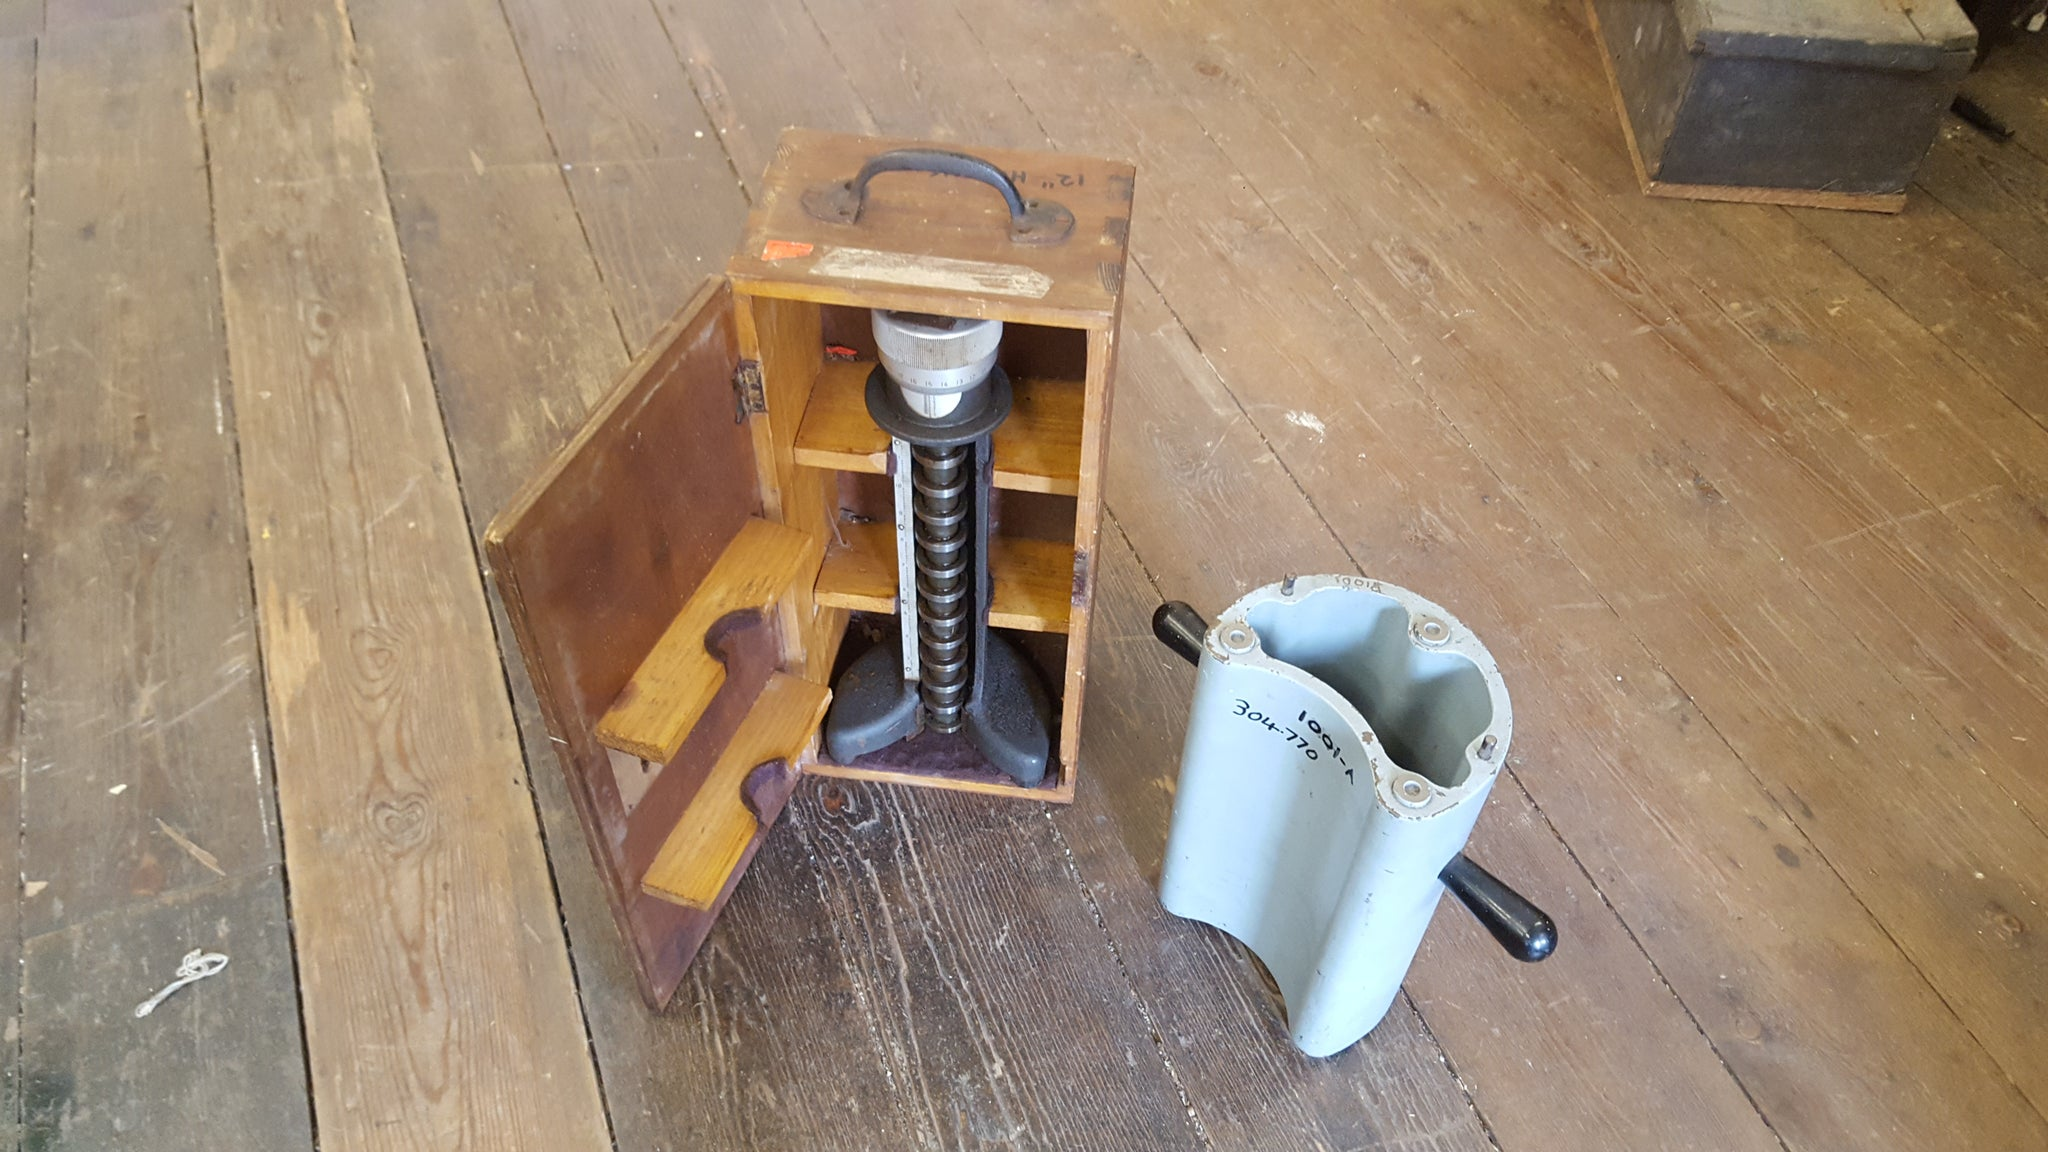 Engineer Catmur Ltd Hommel Werke Heightmaster w/ Case & Stand VGC 15558-The Vintage Tool Shop